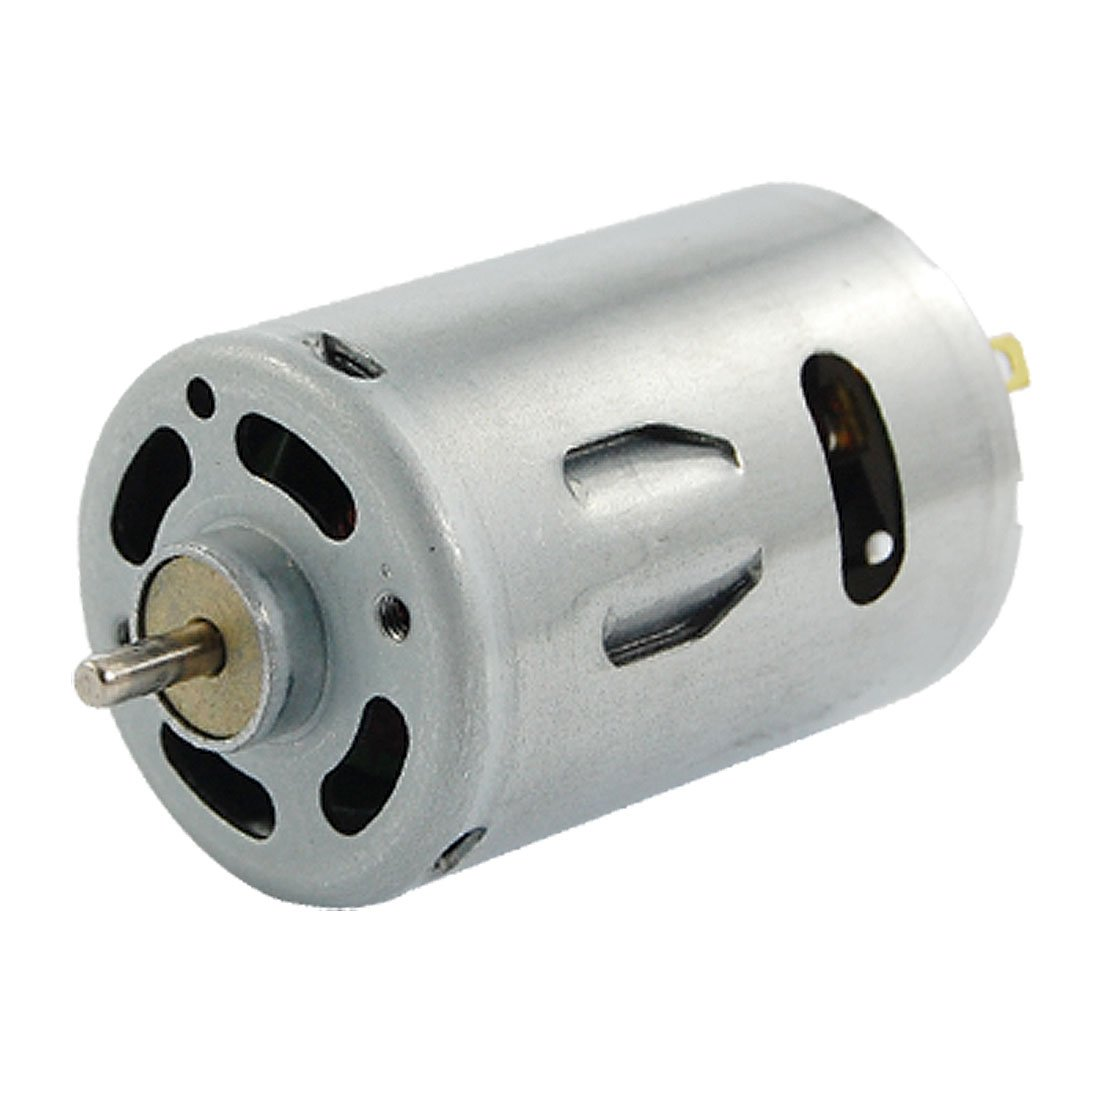 12V 2A 20000RPM Powerful DC Mini Motor for Electric Cars DIY Project